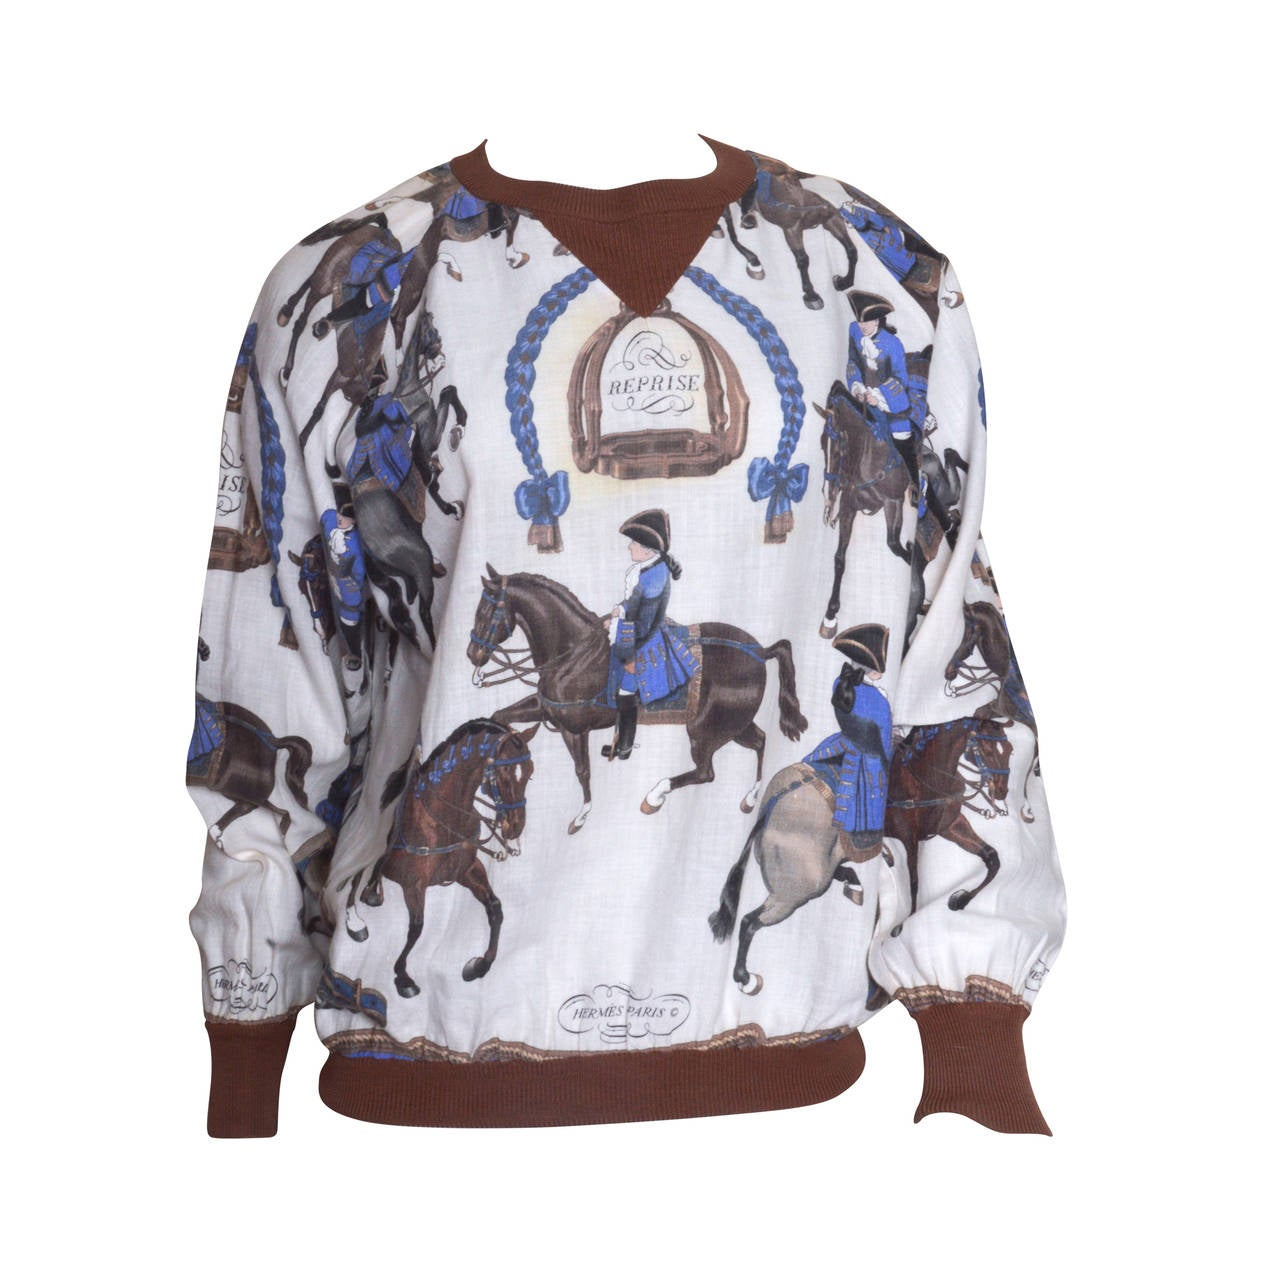 Hermes Equestrian Scarf Print Blouse 1